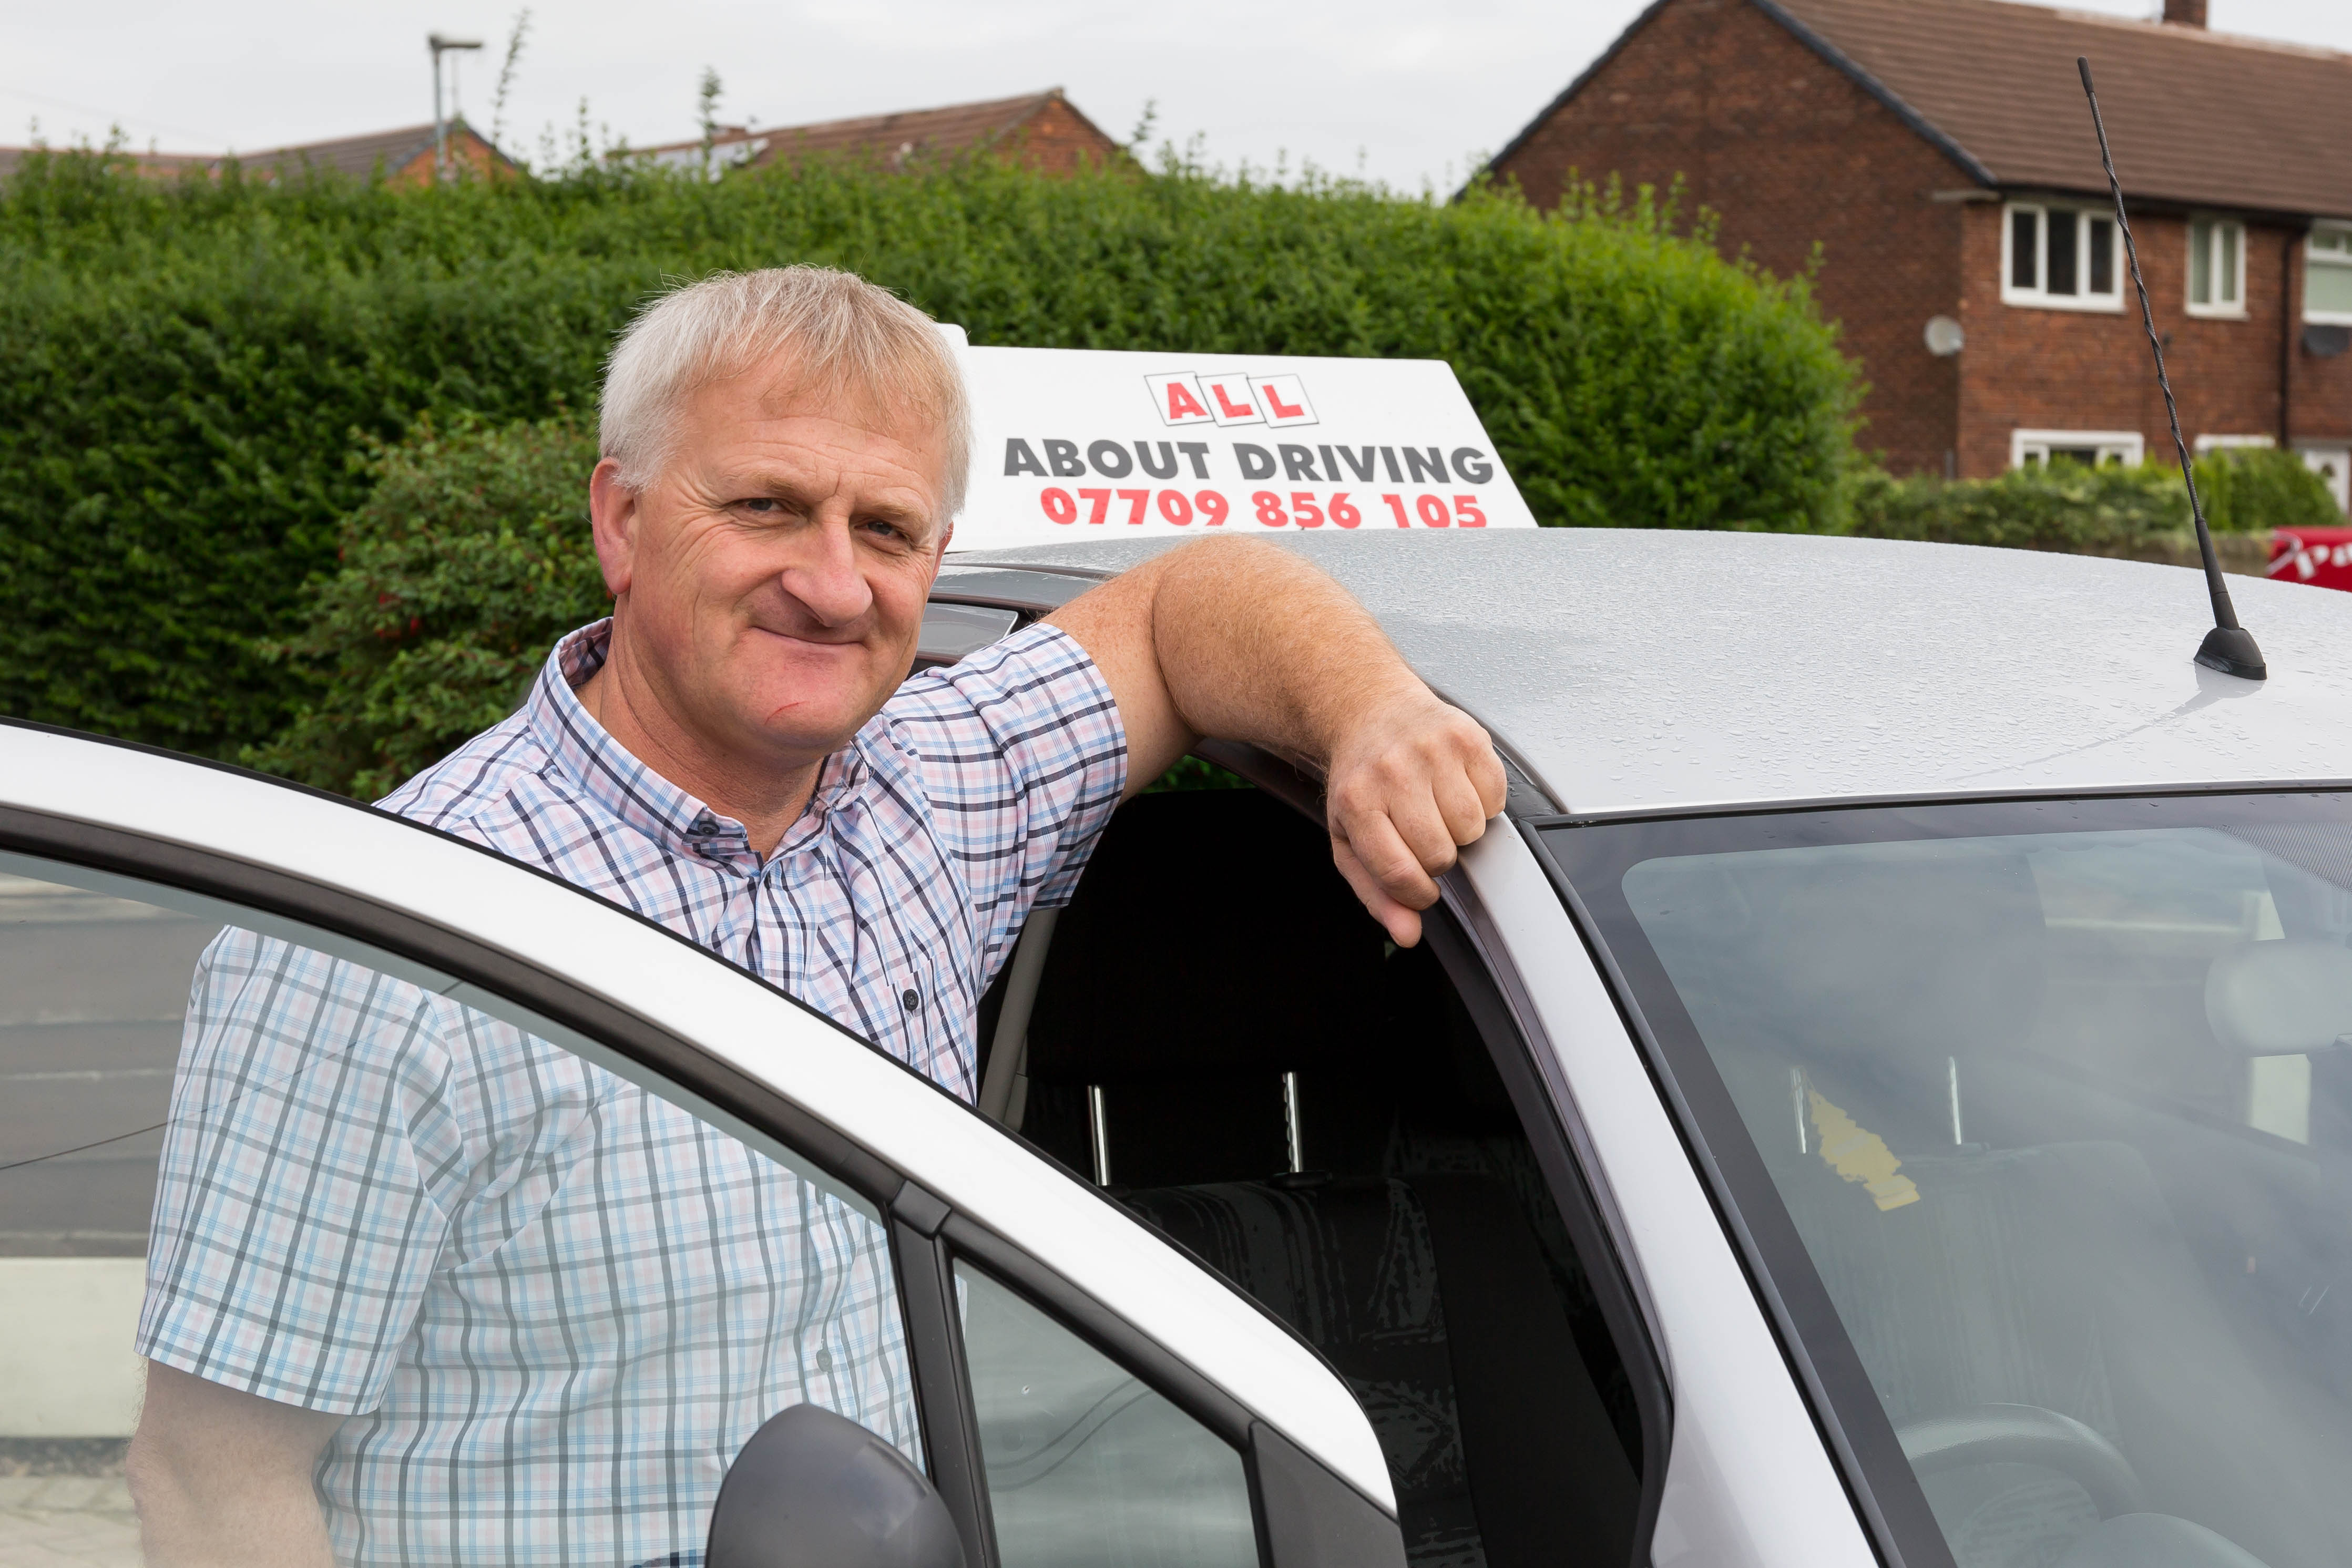 driving lessons in tameside - Meet Vinny